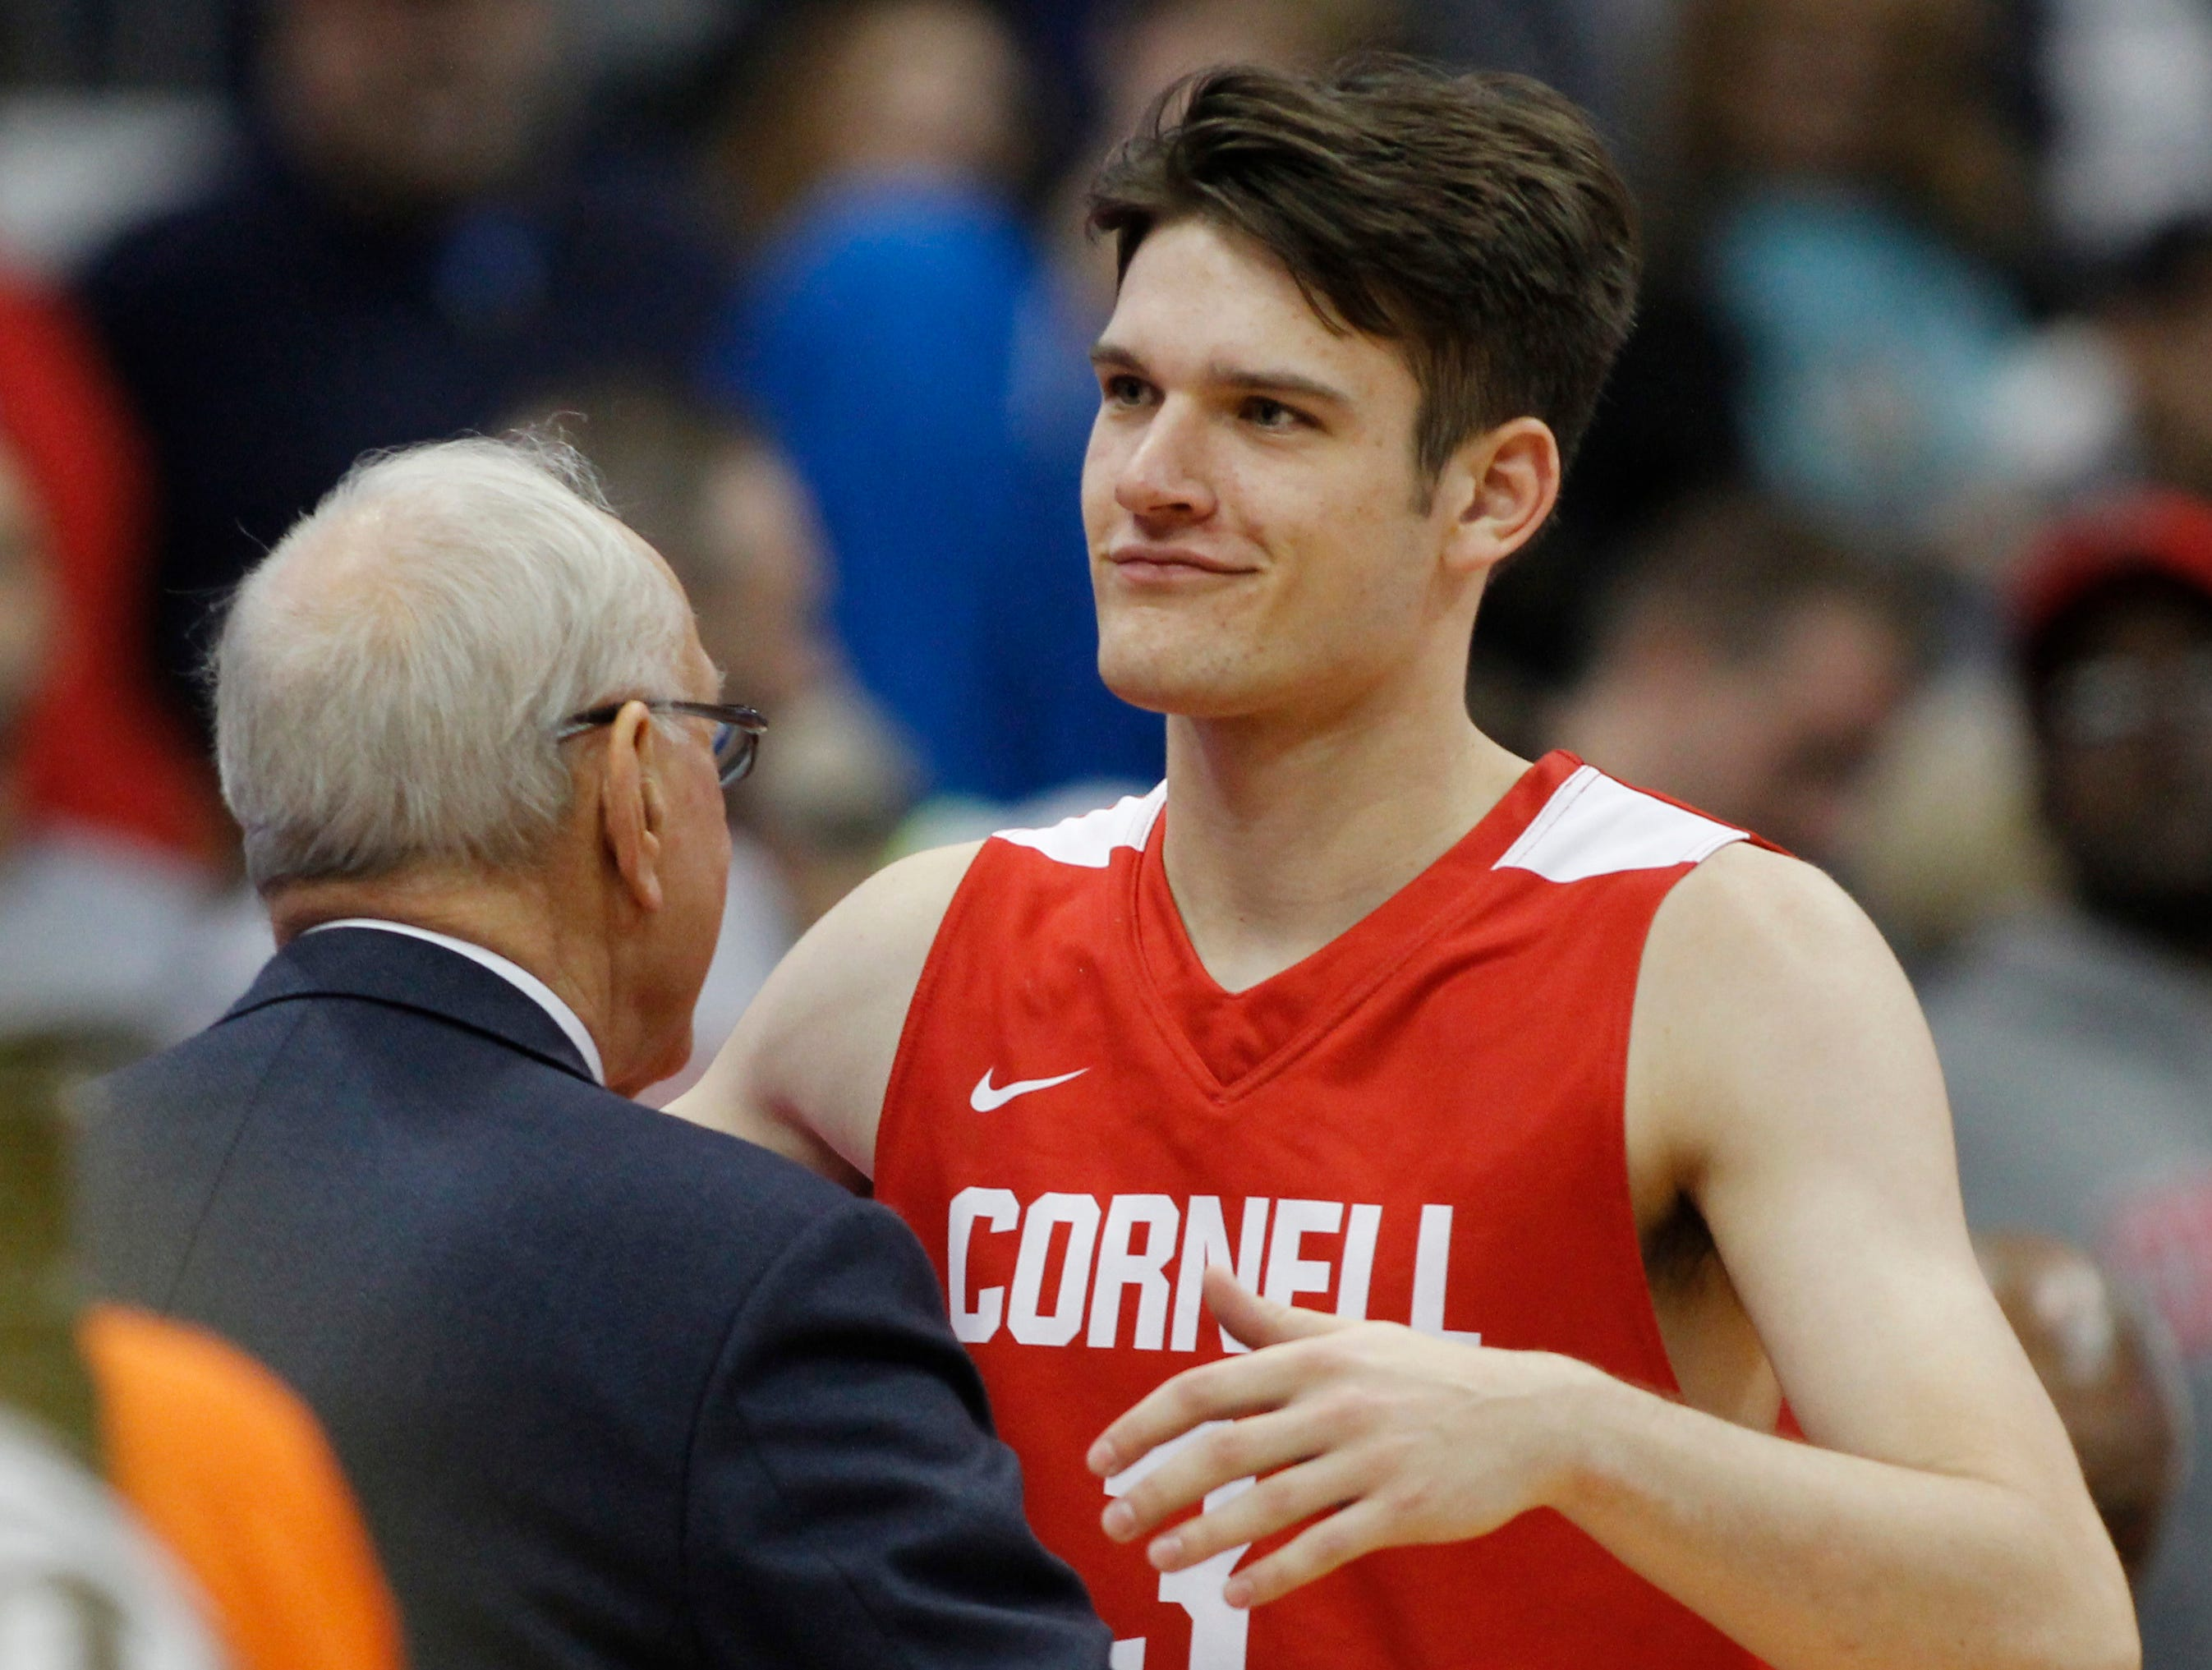 Syracuse head coach Jim Boeheim left, congratulates his son Cornell's Jimmy Boeheim at the end of an NCAA college basketball game in Syracuse, N.Y., Friday, Nov. 10, 2017. Cornell returns to the dome Dec. 1 and this time Jimmy will be facing his dad and his younger brother, Buddy, a 6-5 freshman guard for the Orange.